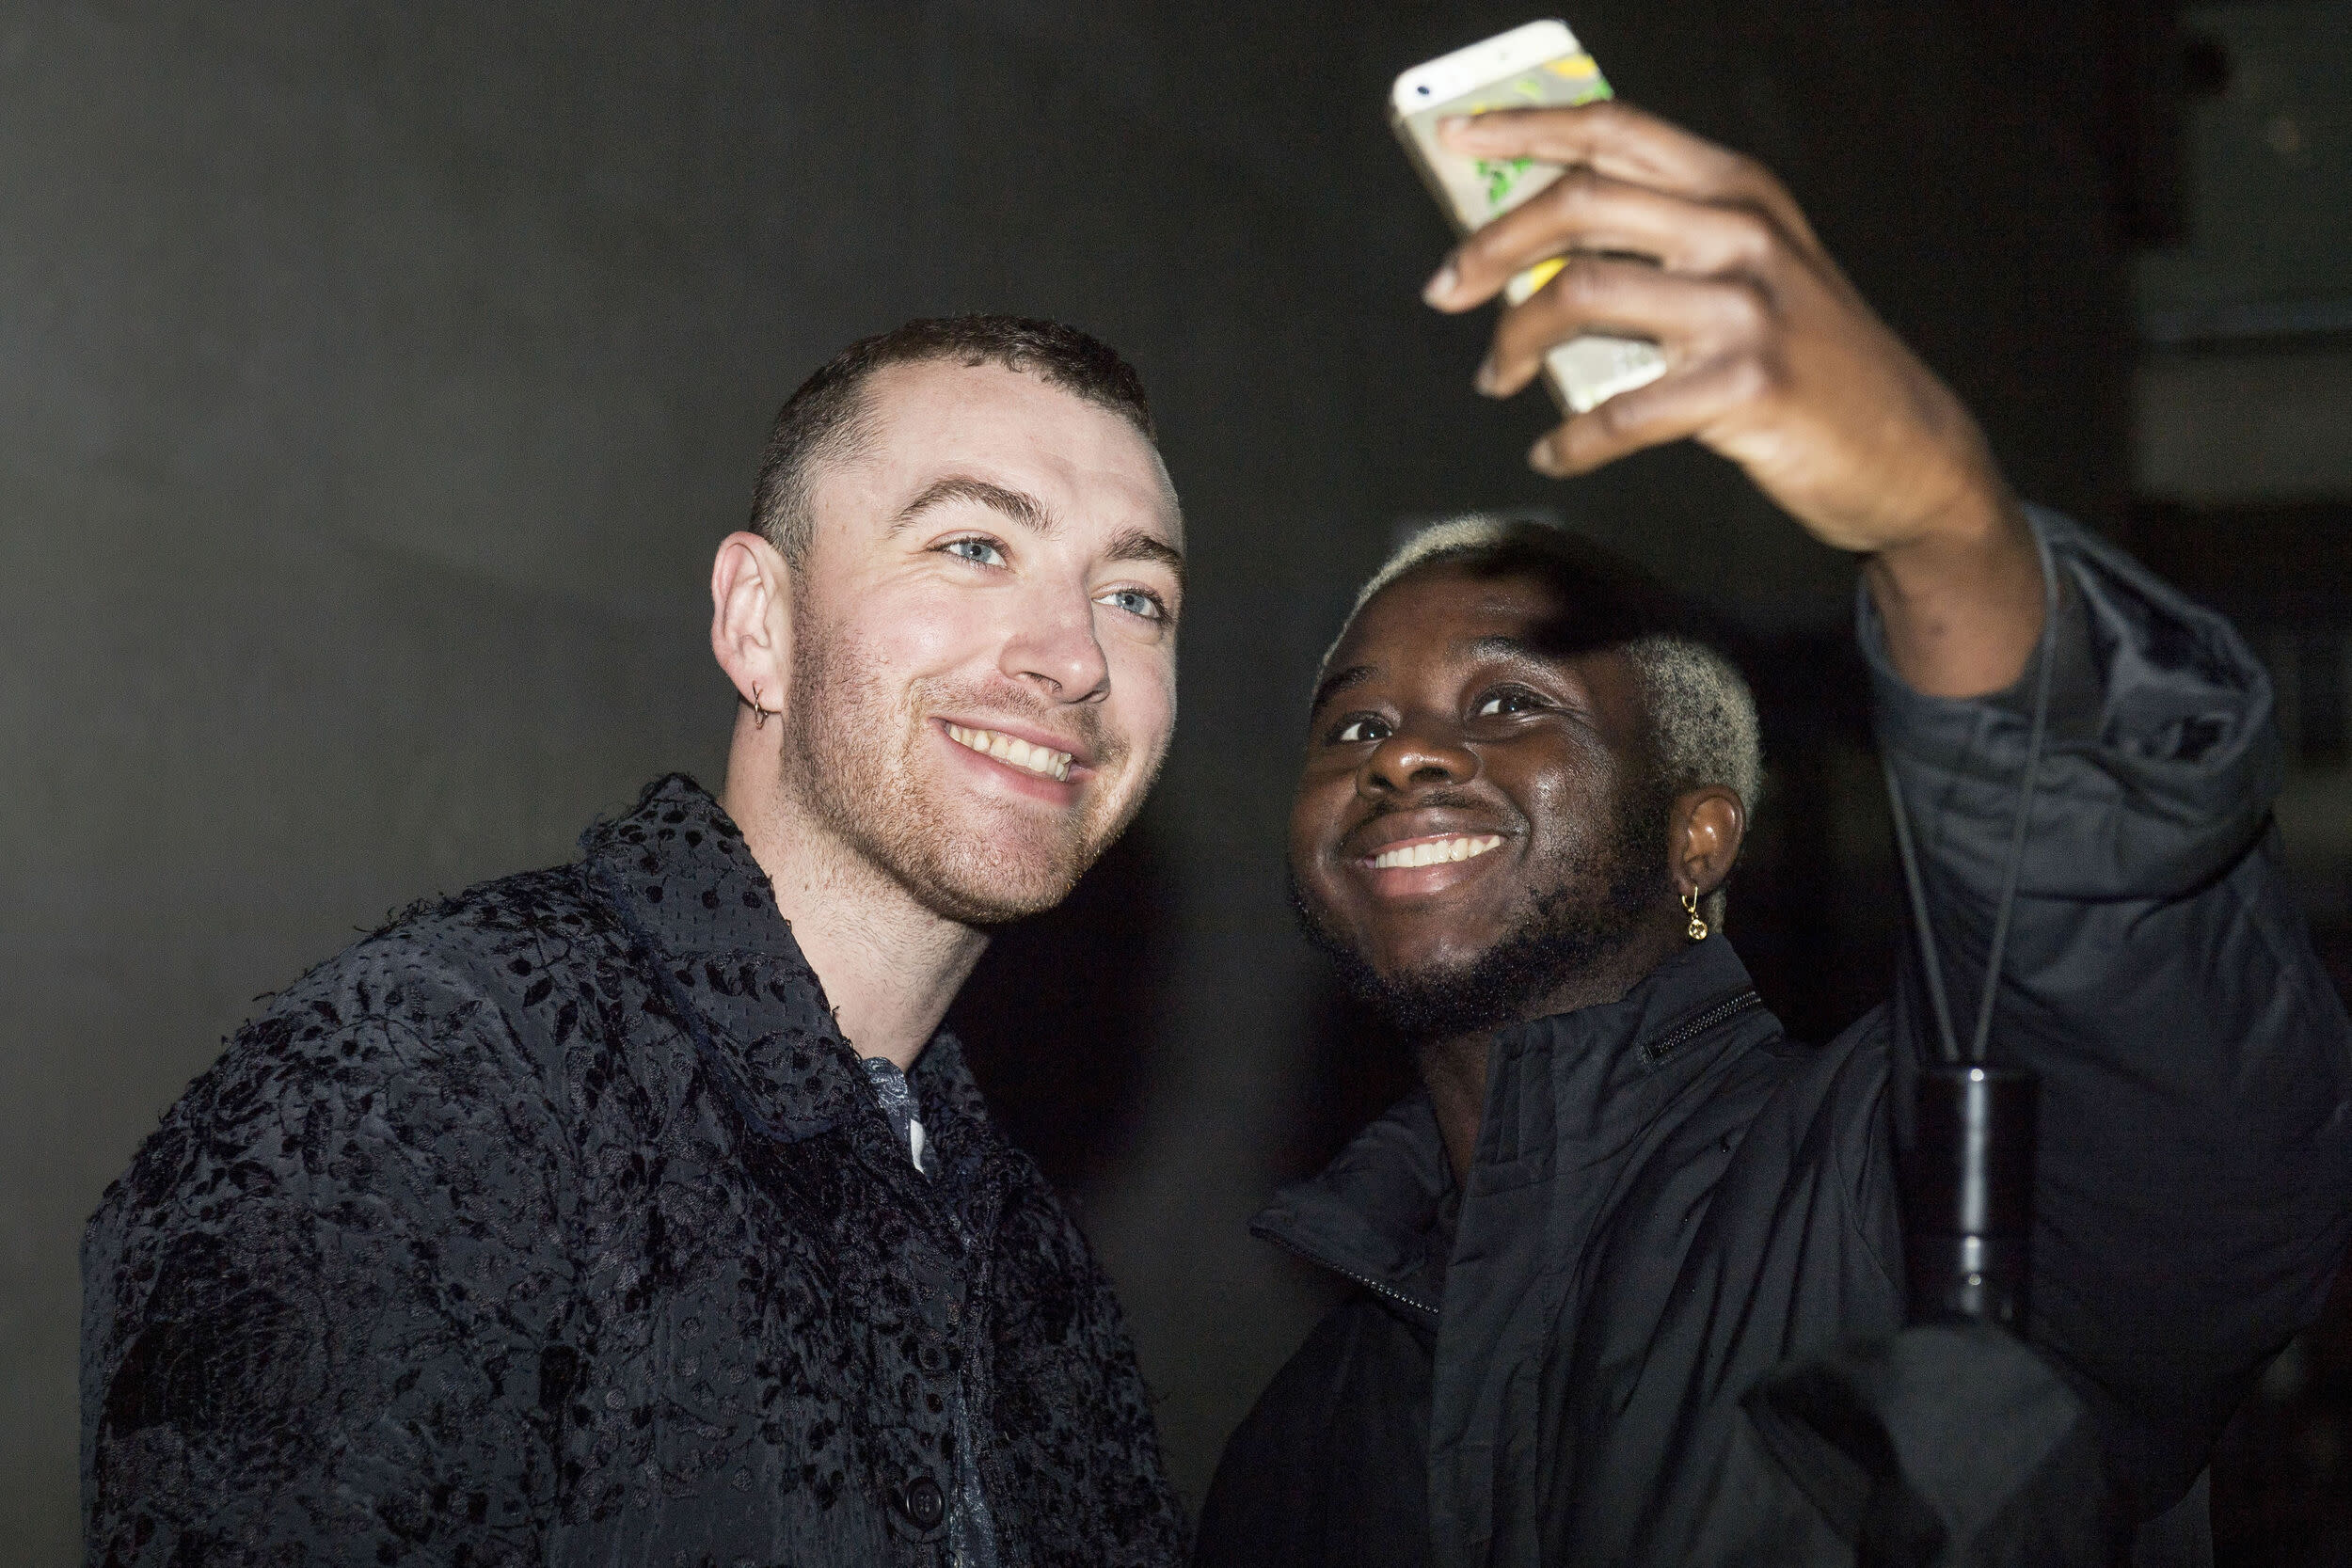 Sam Smith outside BBC Broadcasting House in London, where he appeared on on The Radio 1 Breakfast Show with Nick Grimshaw.